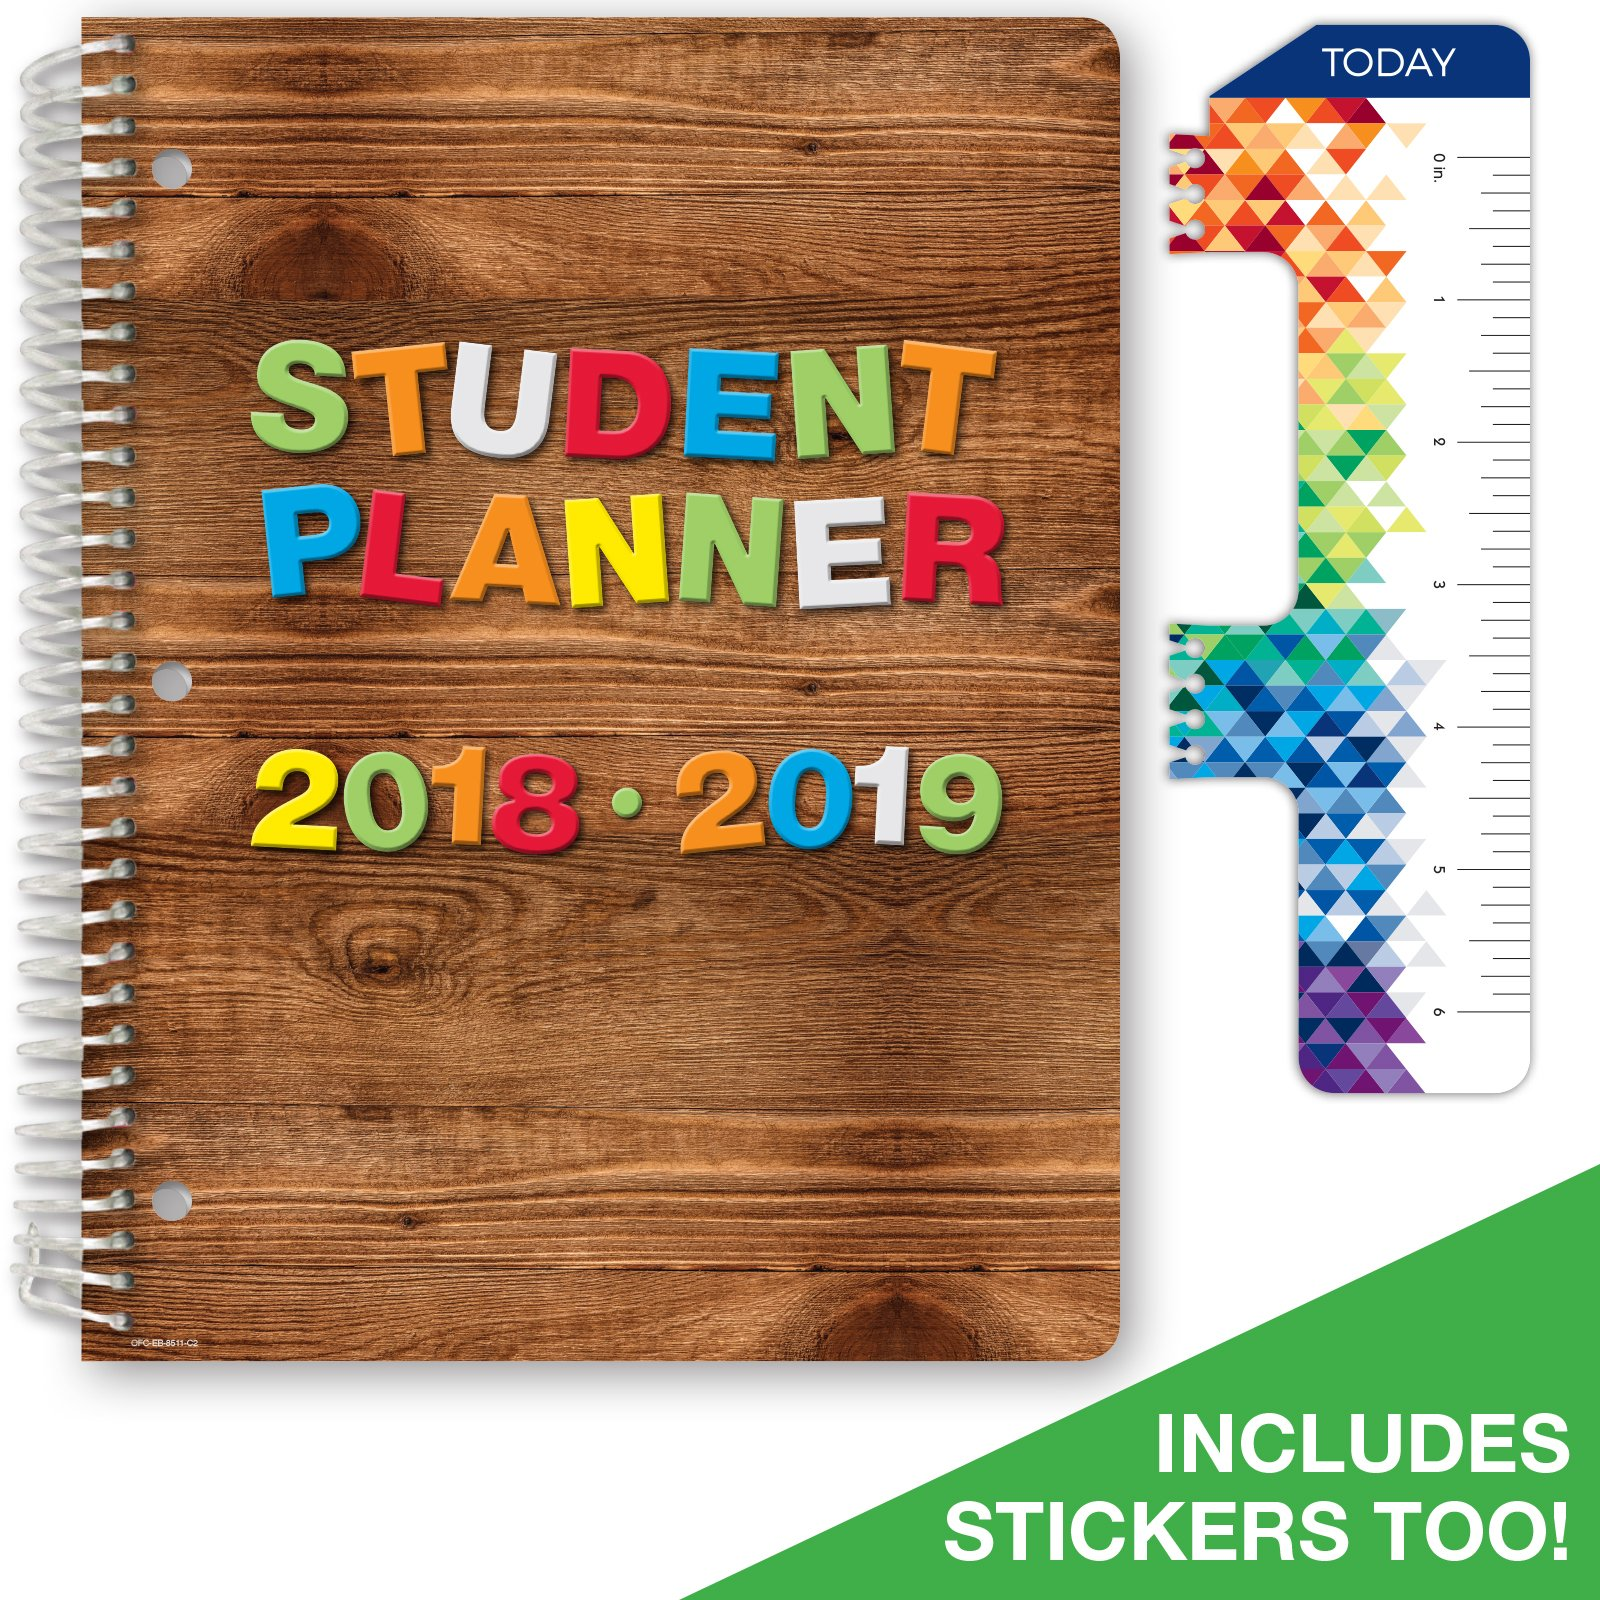 Dated Elementary Student Planner for Academic Year 2018-2019 (Block Style - 8.5''x11'' - Wood Letters Cover) - Bonus Ruler/Bookmark and Planning Stickers